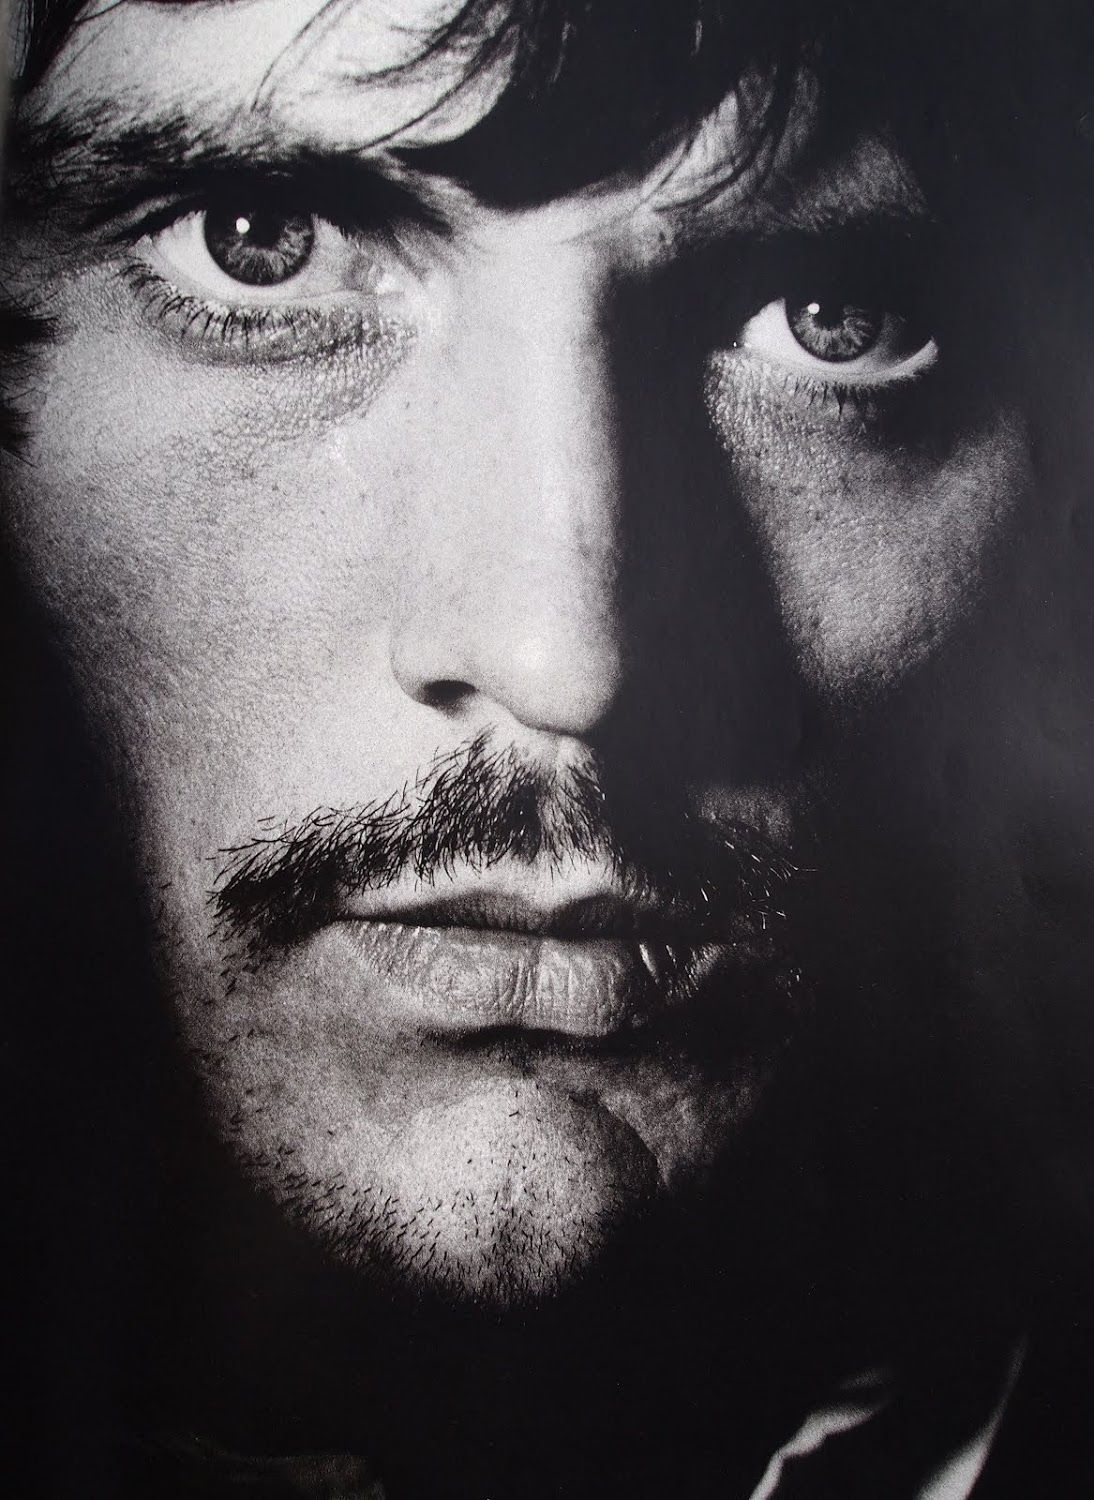 Terence Stamp (born 1938)